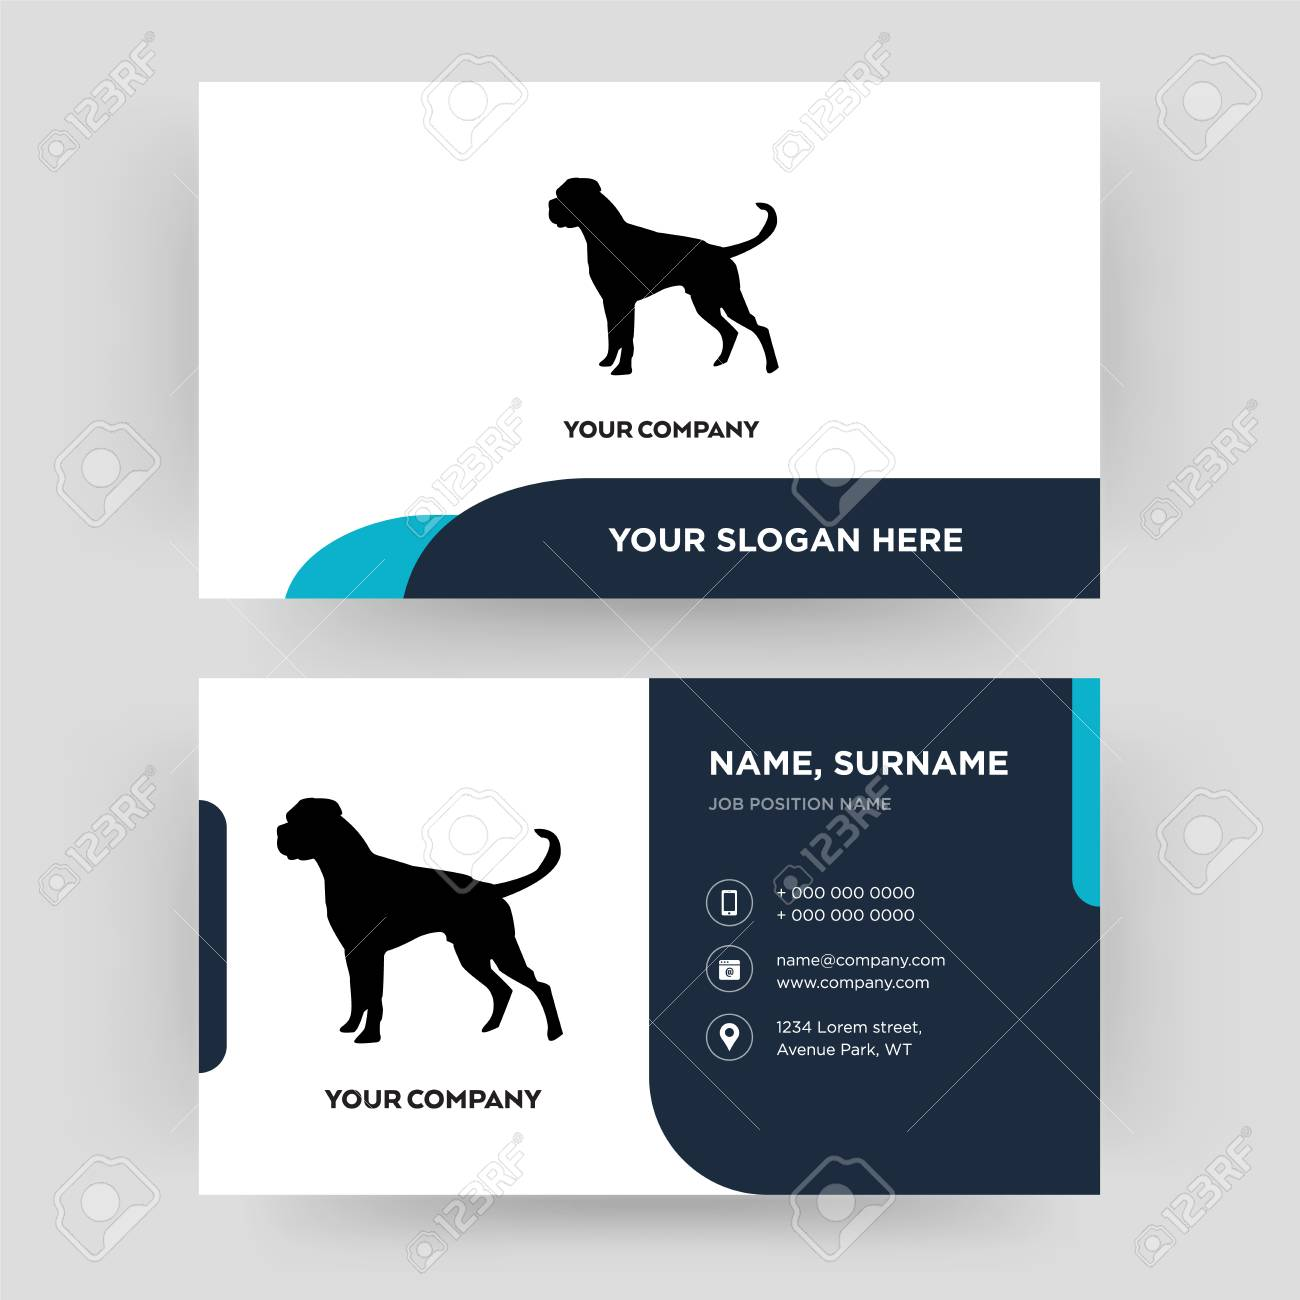 boxer dog, business card design template, Visiting for your company, Modern Creative and Clean identity Card Vector - 102415283